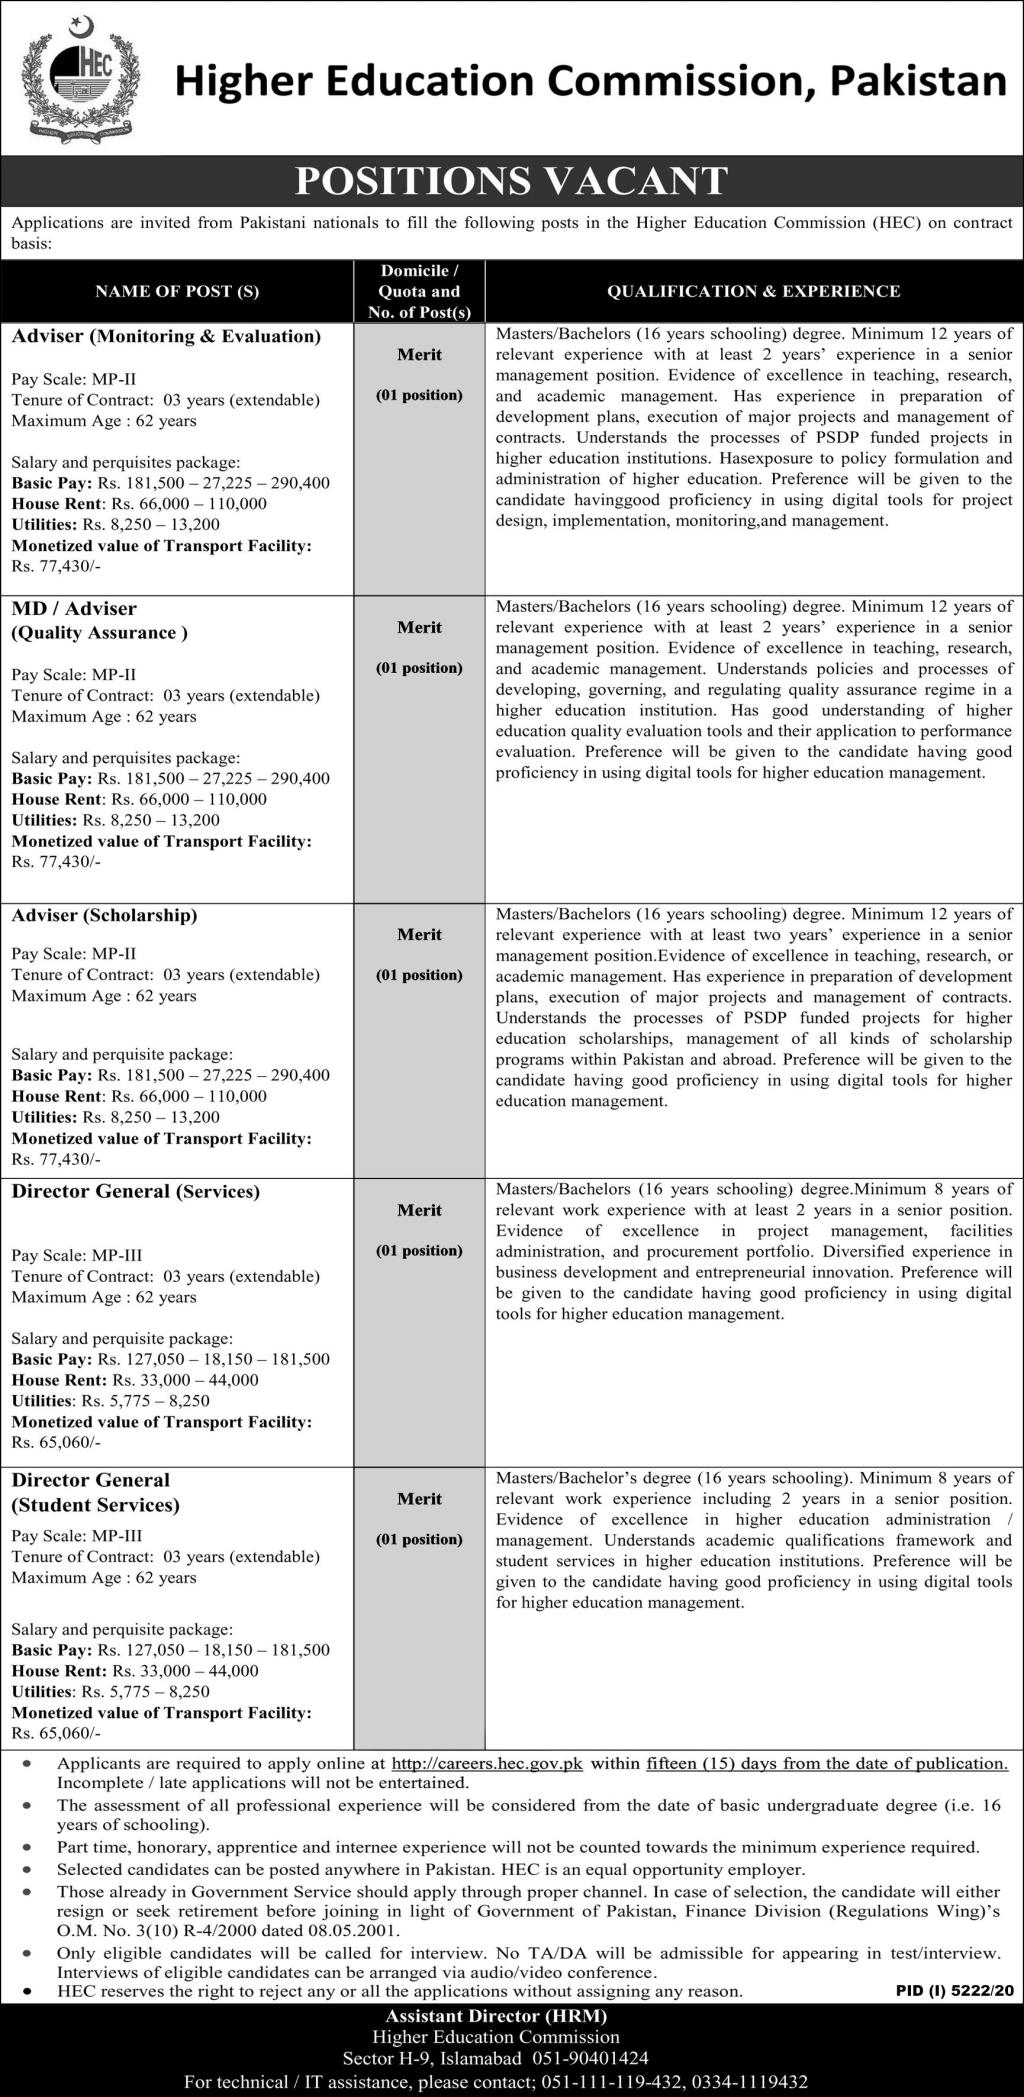 Higher Education Commission HEC Jobs 2021 for Monitoring & Evaluation Advisor, Director General & more